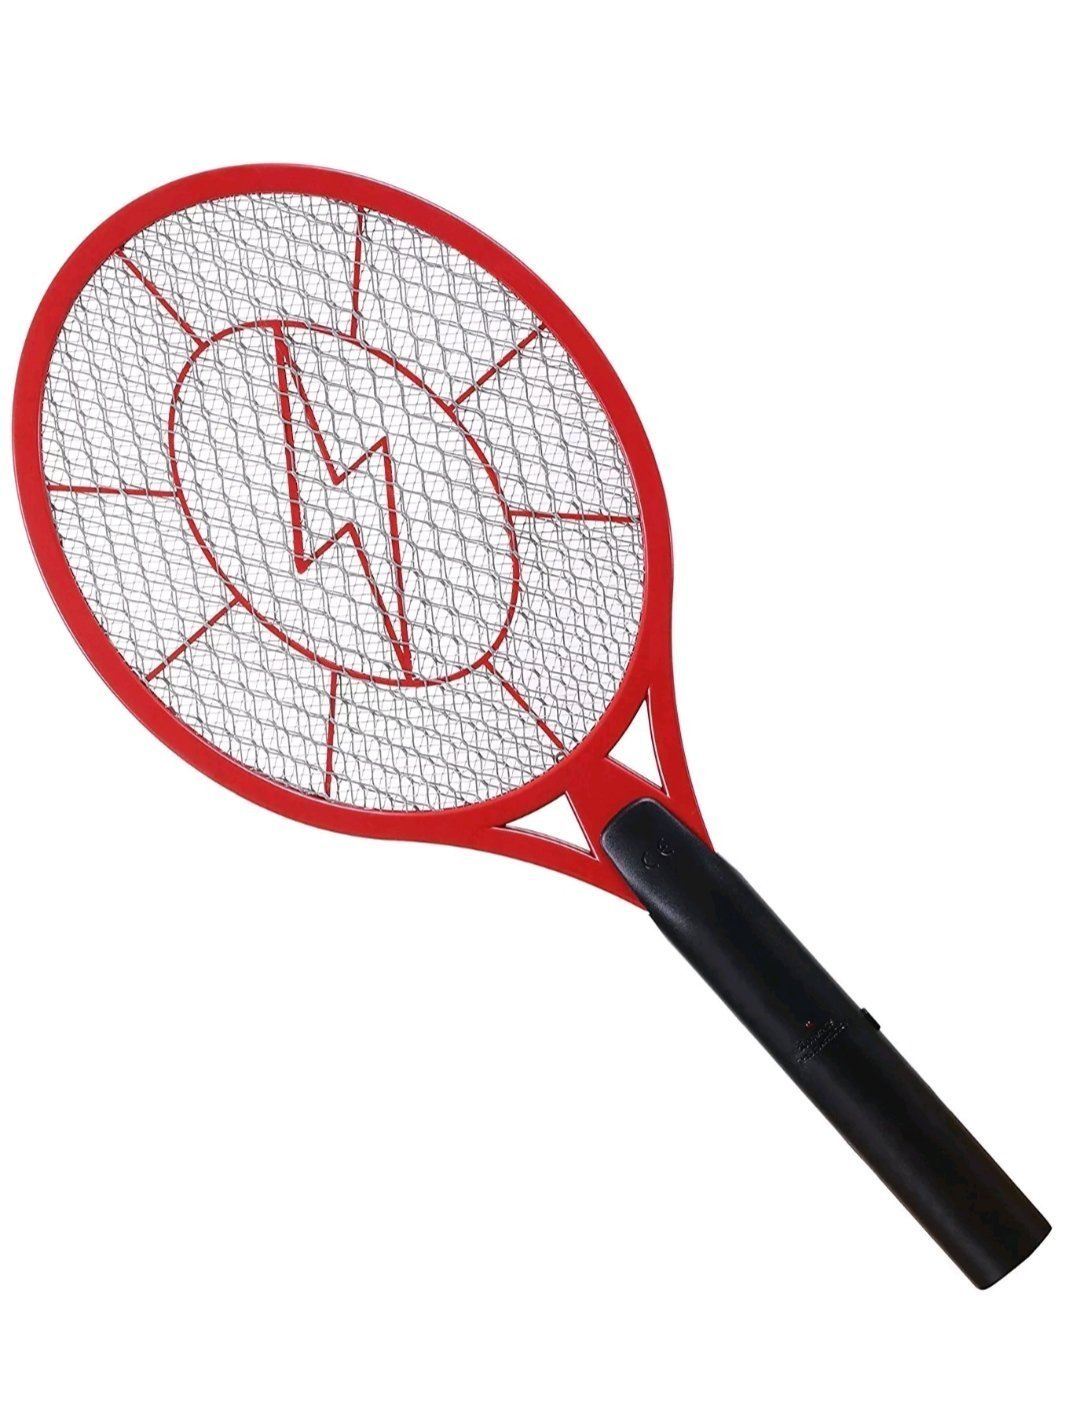 Handheld Bug Zapper Electric Bug Zapper Fly/Mosquito Swatter Best for Indoor and Outdoor Pest Control